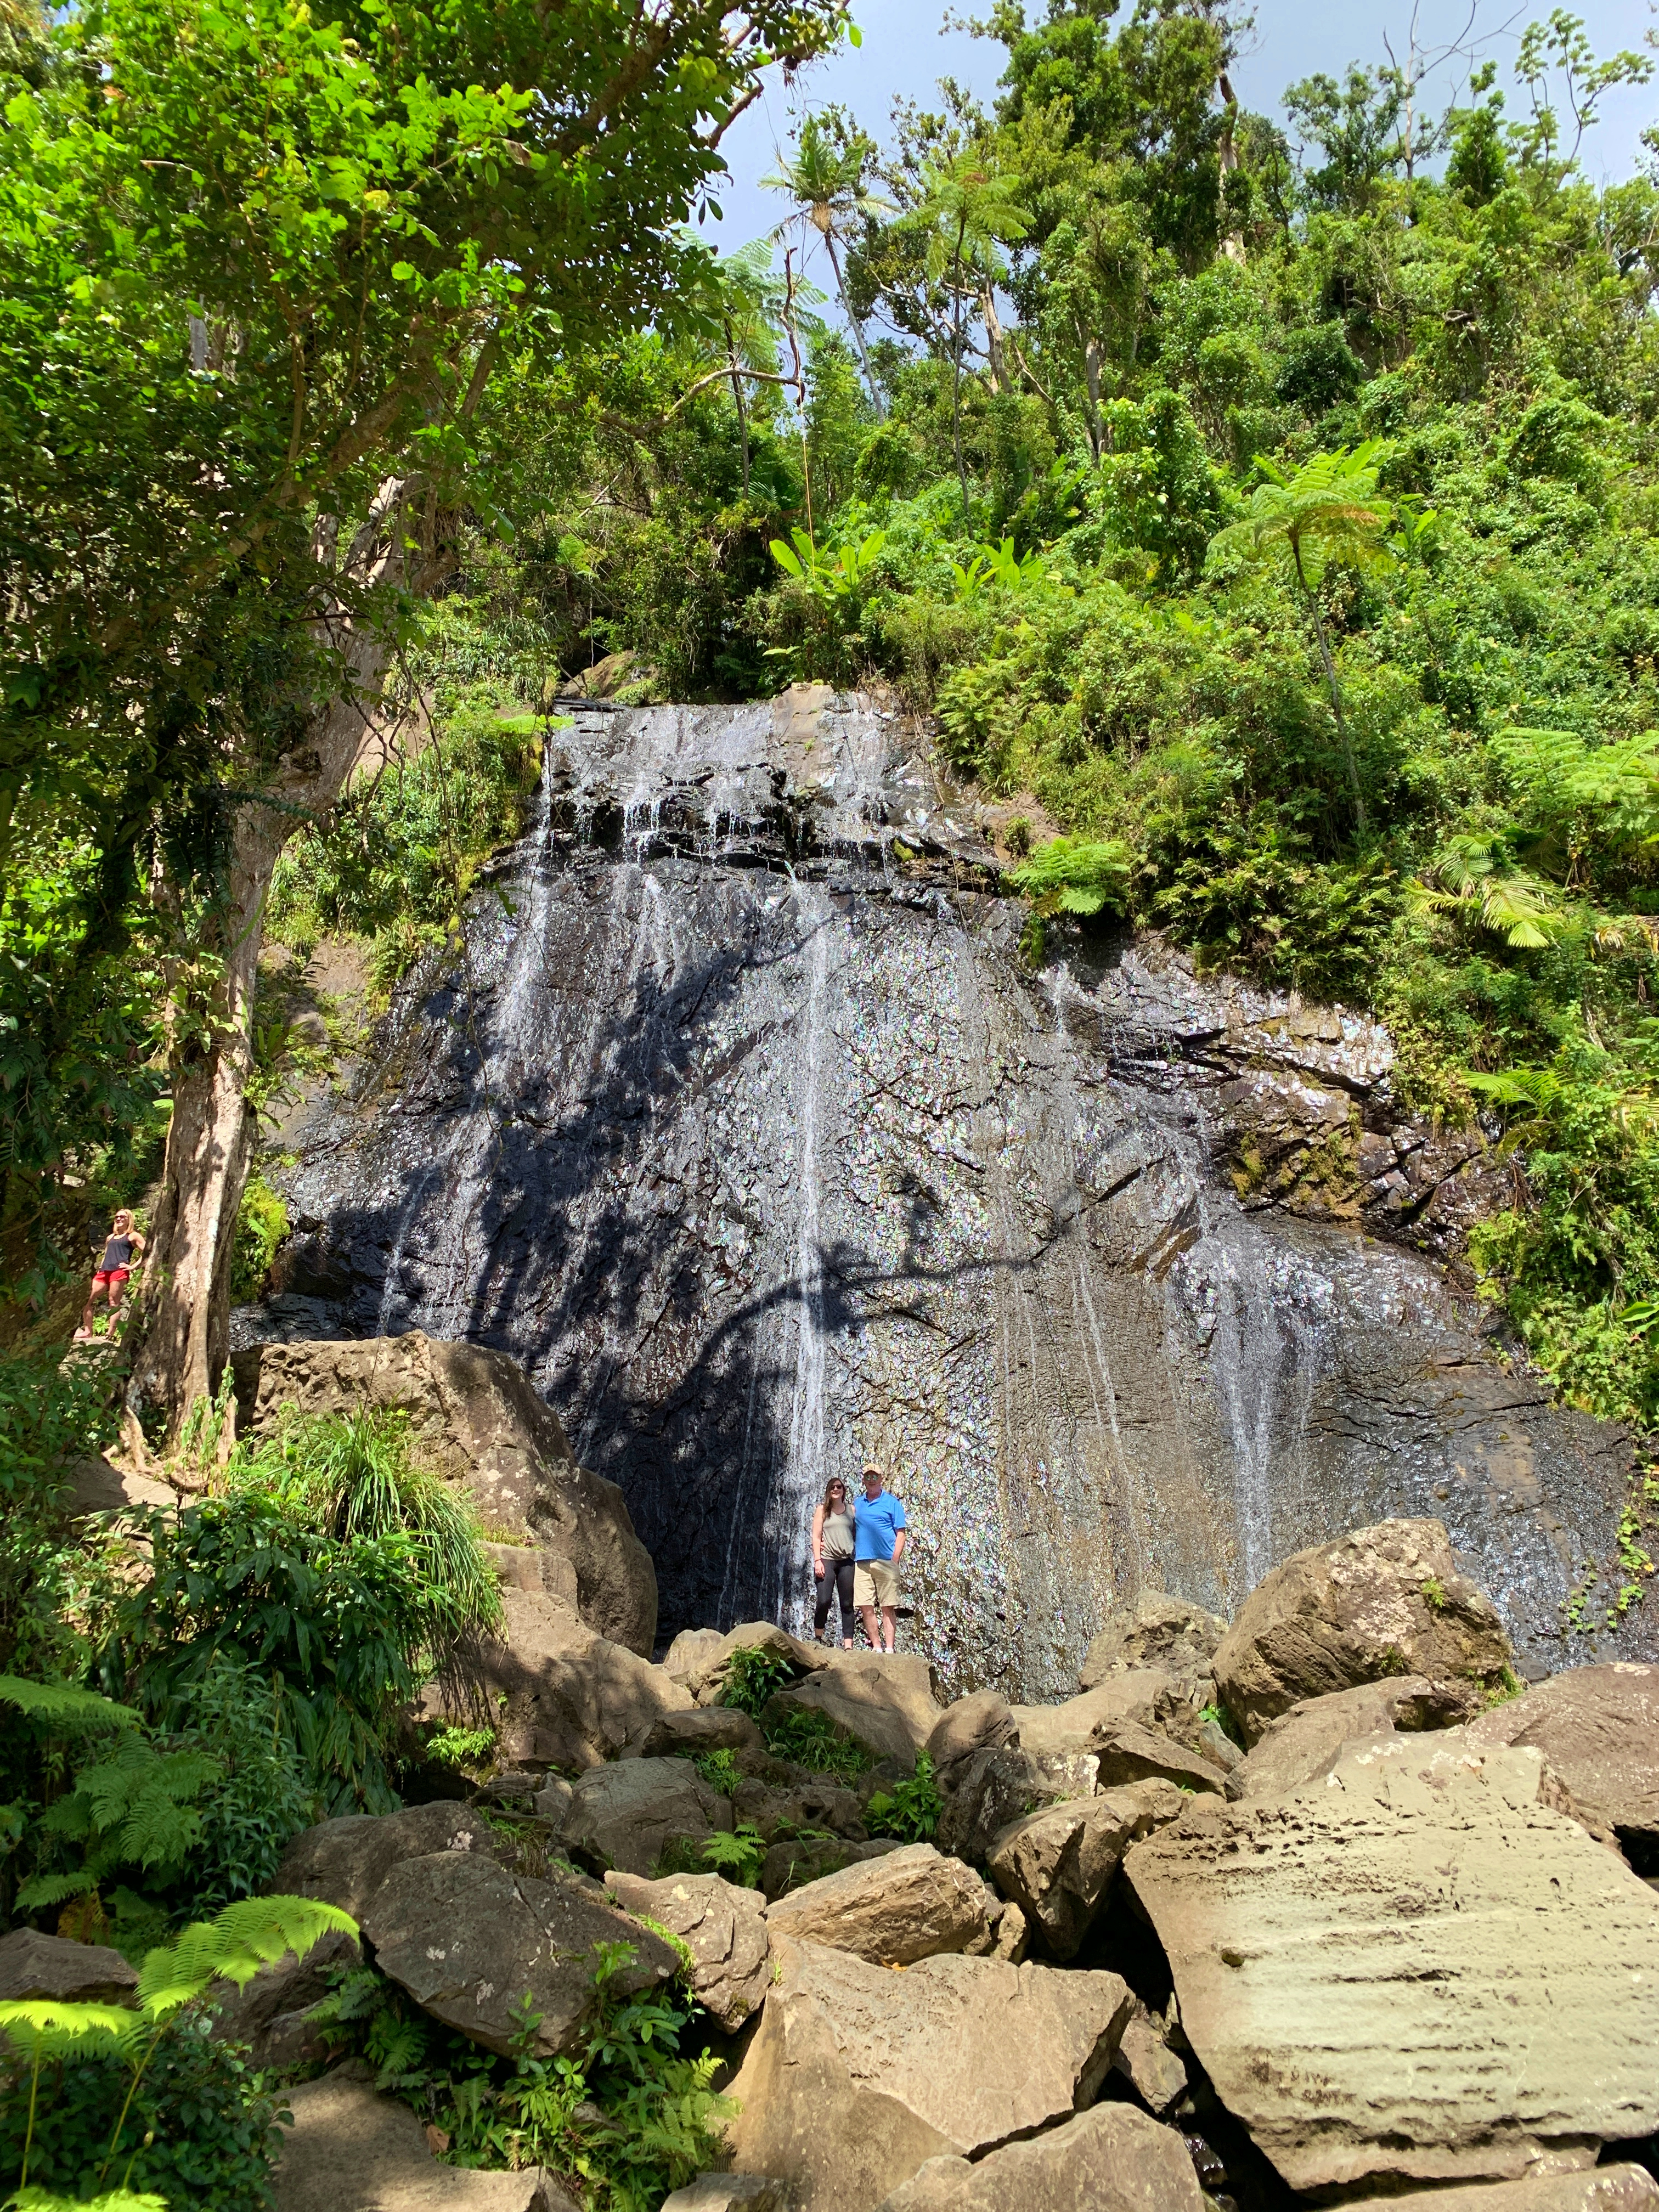 A Place To Call Home By Amy Schisler Reviews Discussion A Place To Call Home Book On Our Visit To El Junque Rainforest, We Drove To A Beautiful Waterfall  Where Dozens Of Tourists Were Stopping For Pictures. Sadly, It Was The Only  Place In ...